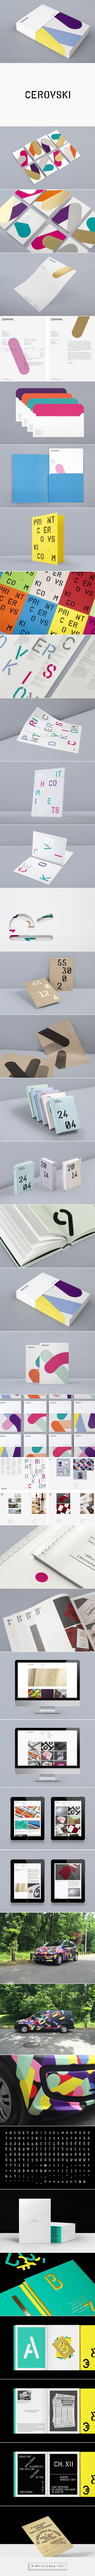 New Logo and Brand Identity for Cerovski by Bunch - BP&O - created via http://pinthemall.net